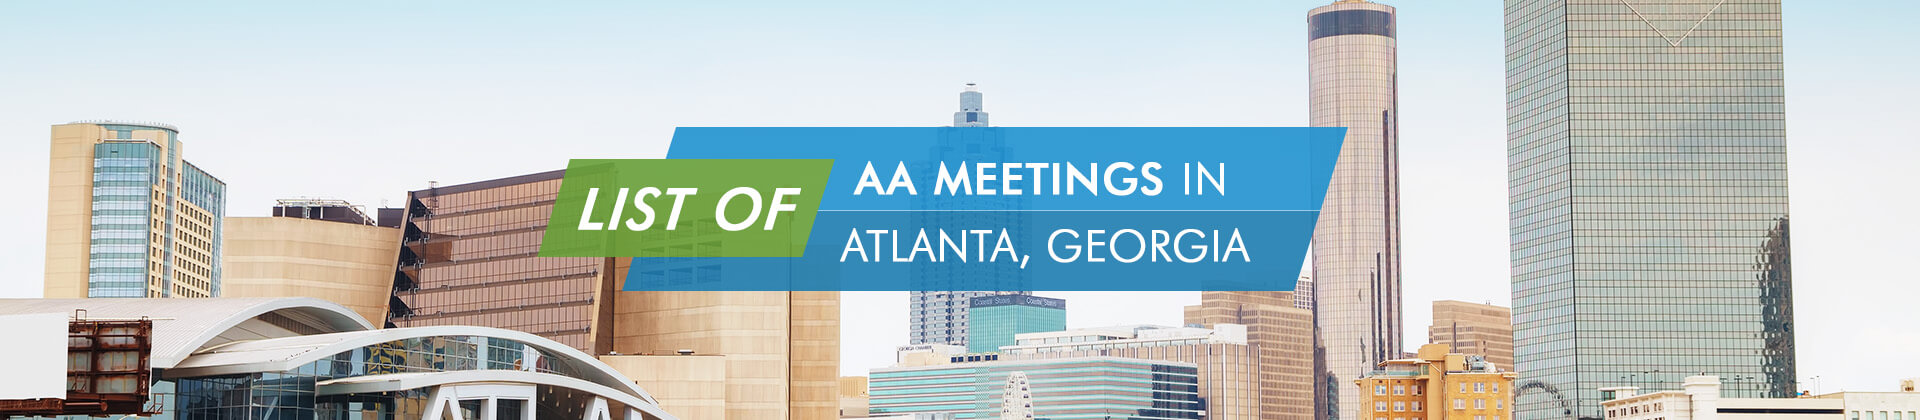 AA Meetings Atlanta Georgia